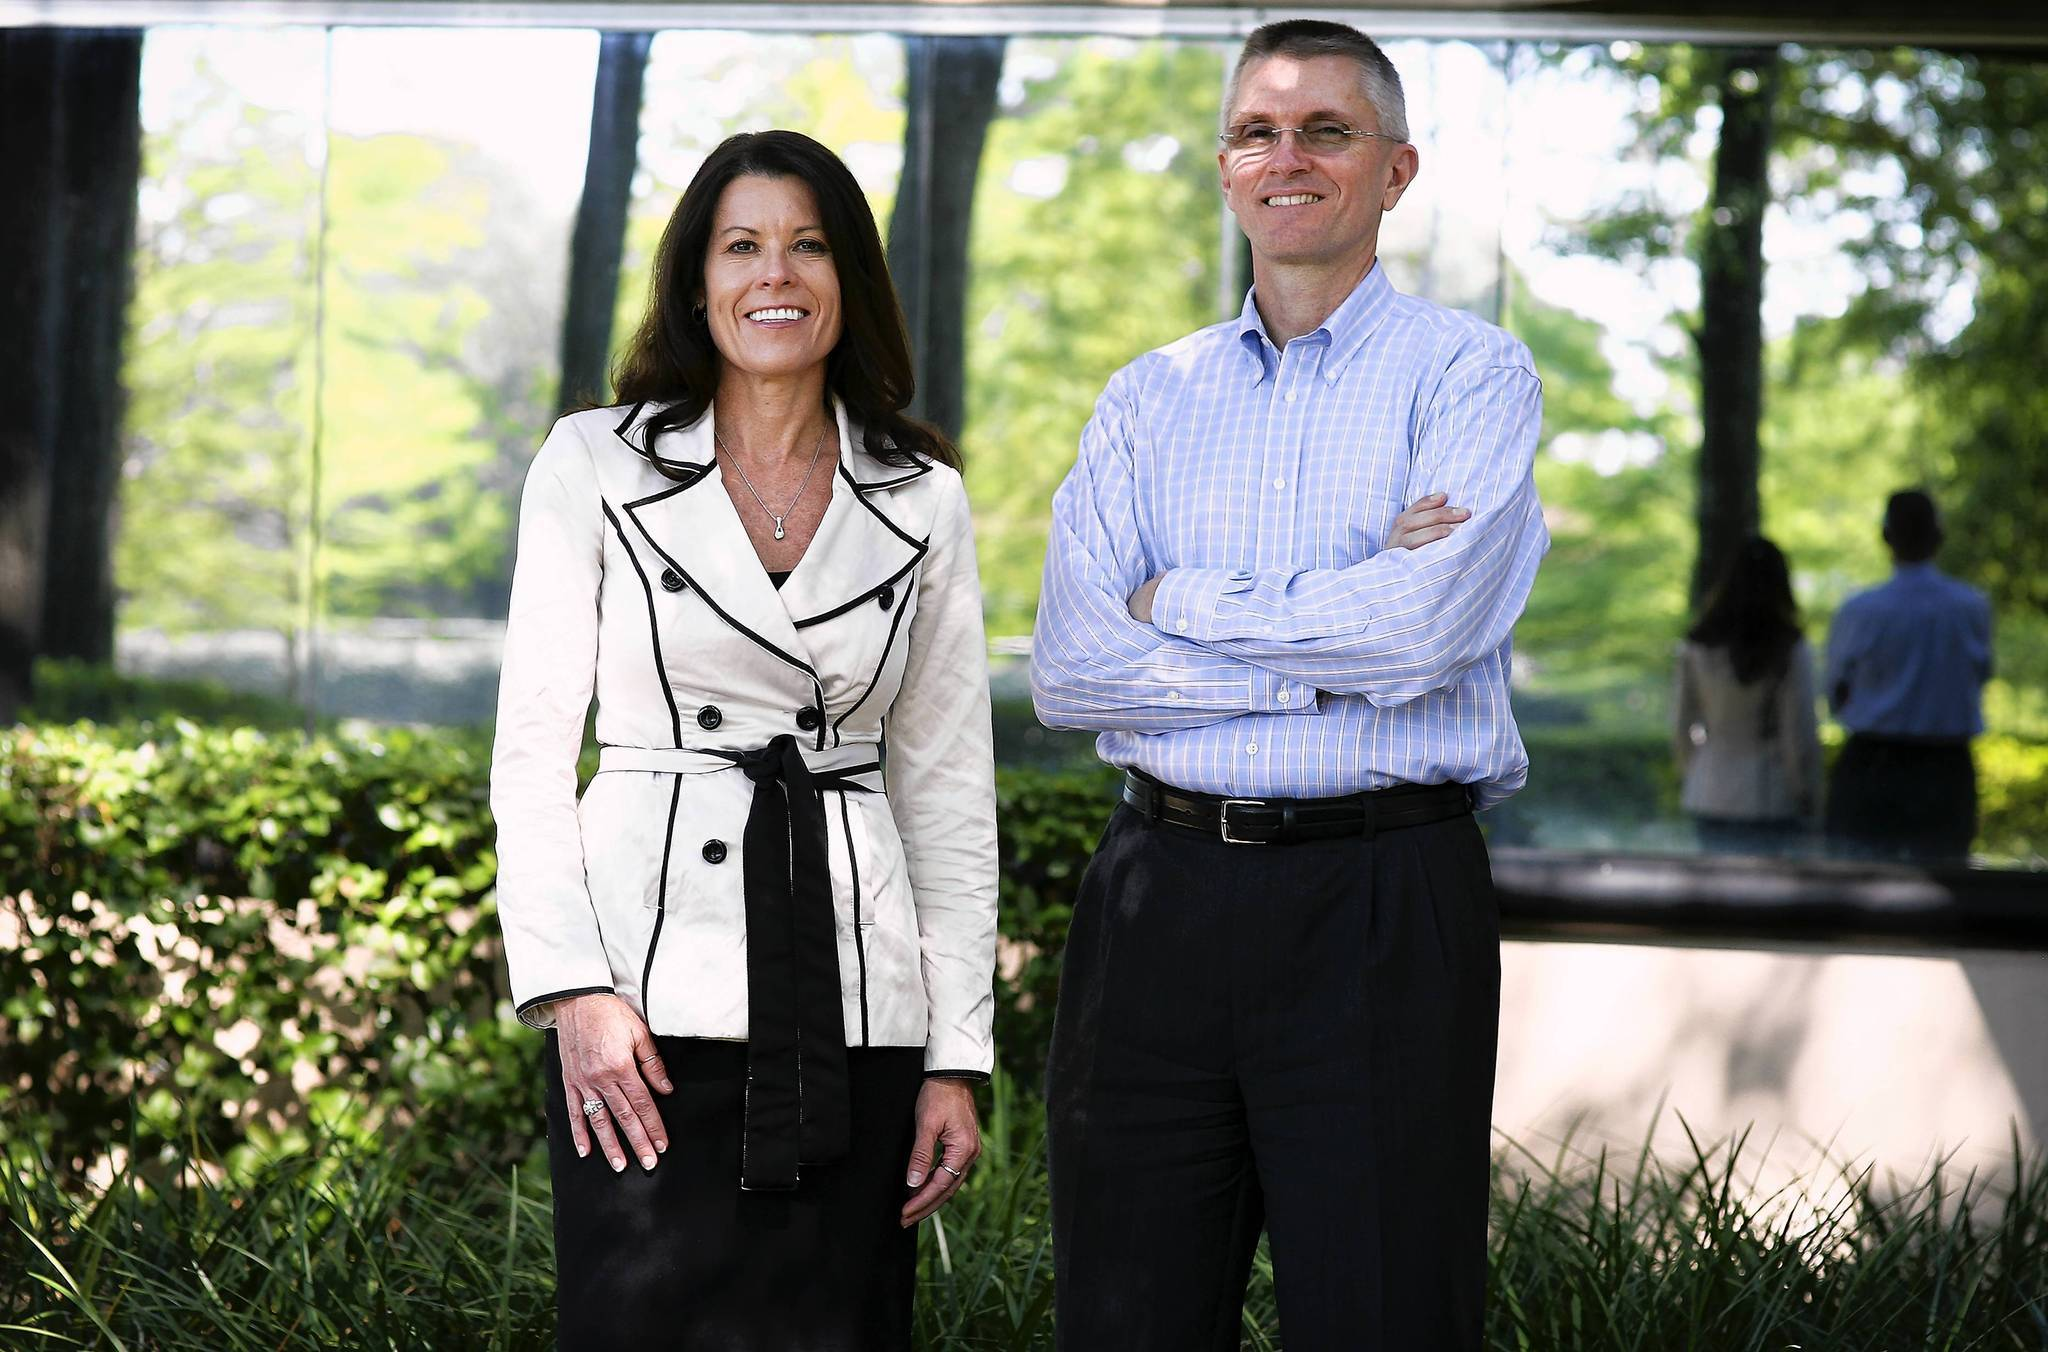 Shari Dingle Sandifer, CEO of Avant Healthcare, and Spencer Lloyd, the companys CFO, at their Casselberry office.